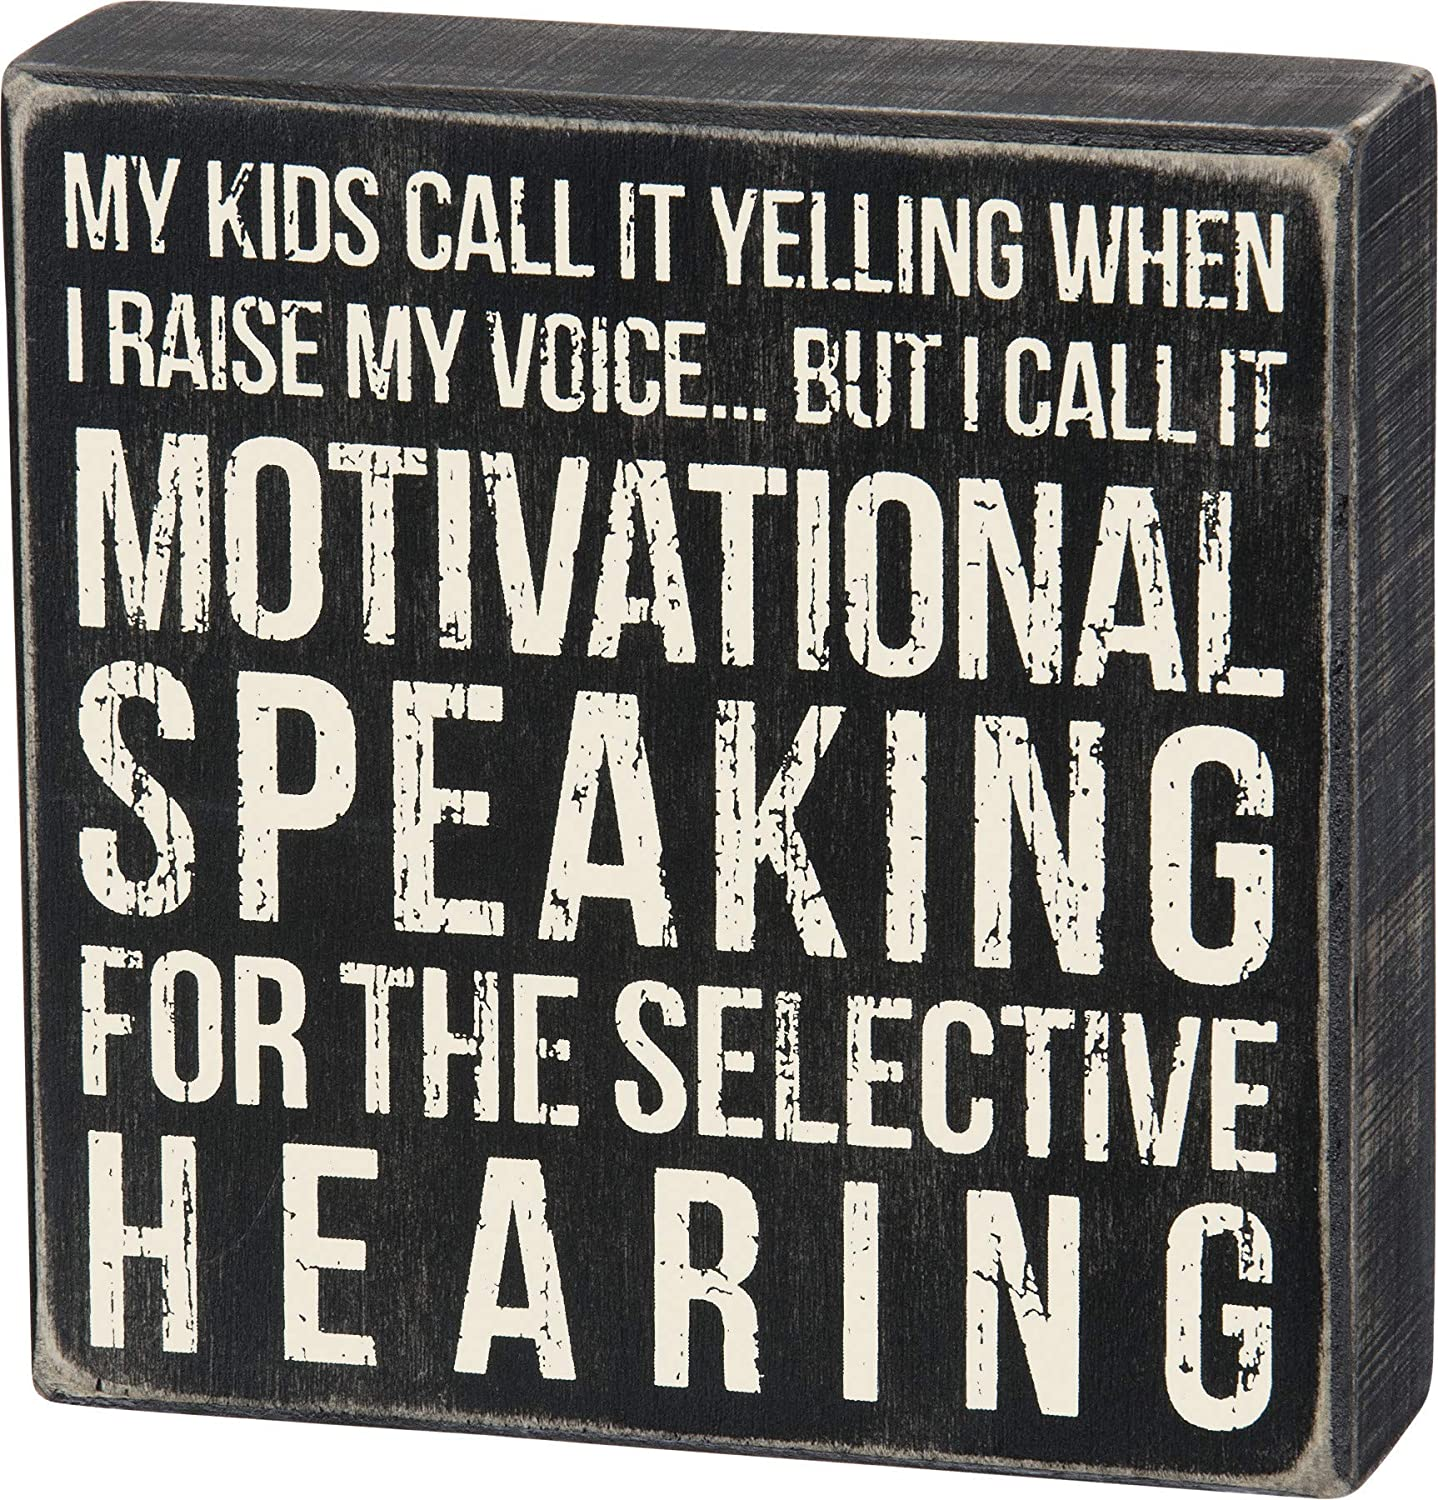 Primitives by Kathy 25160 Classic Box Sign, 6 x 6-Inches, Raise My Voice